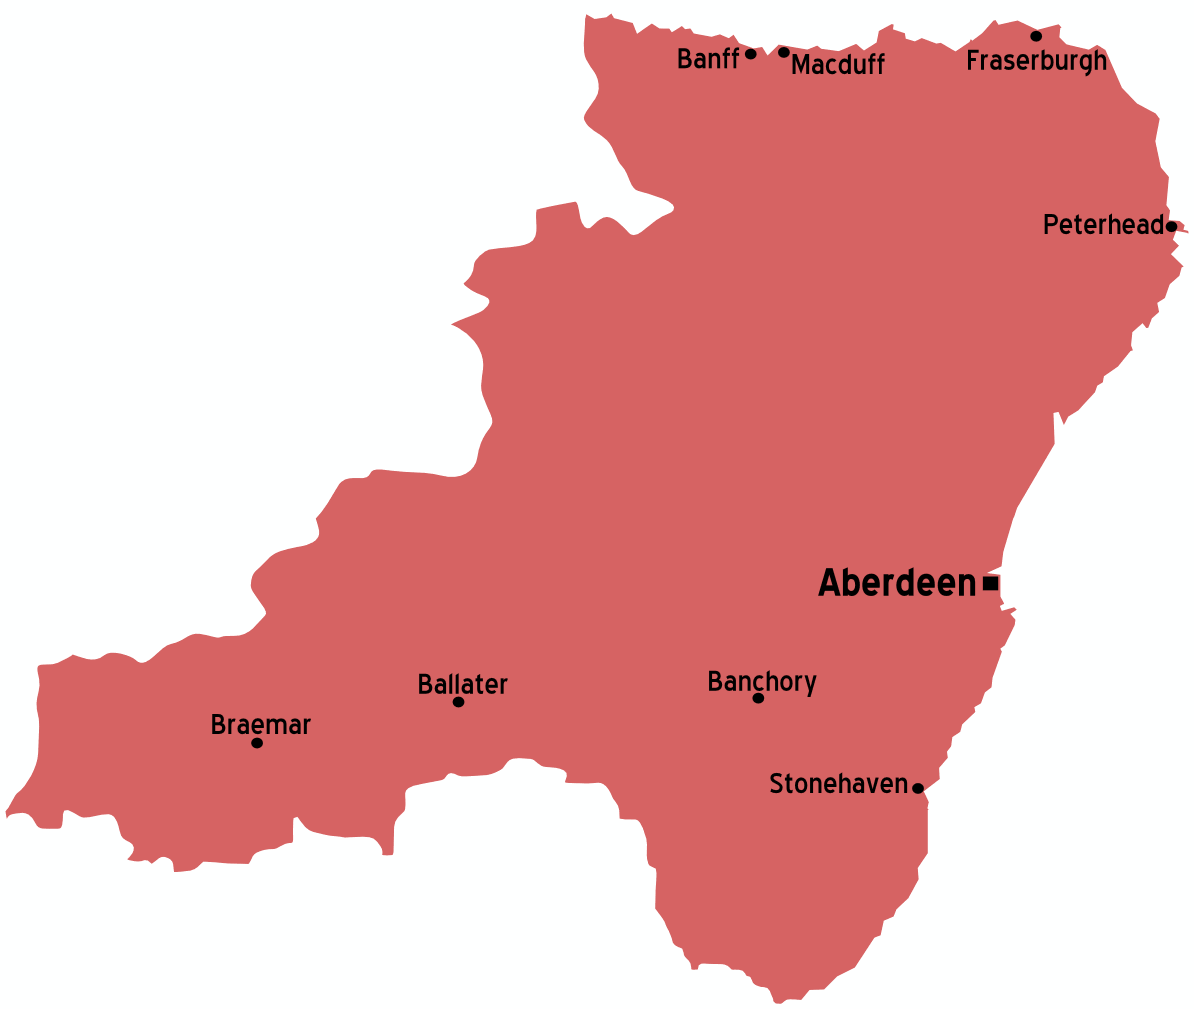 Aberdeenshire Scotland Map • Mapsof.net